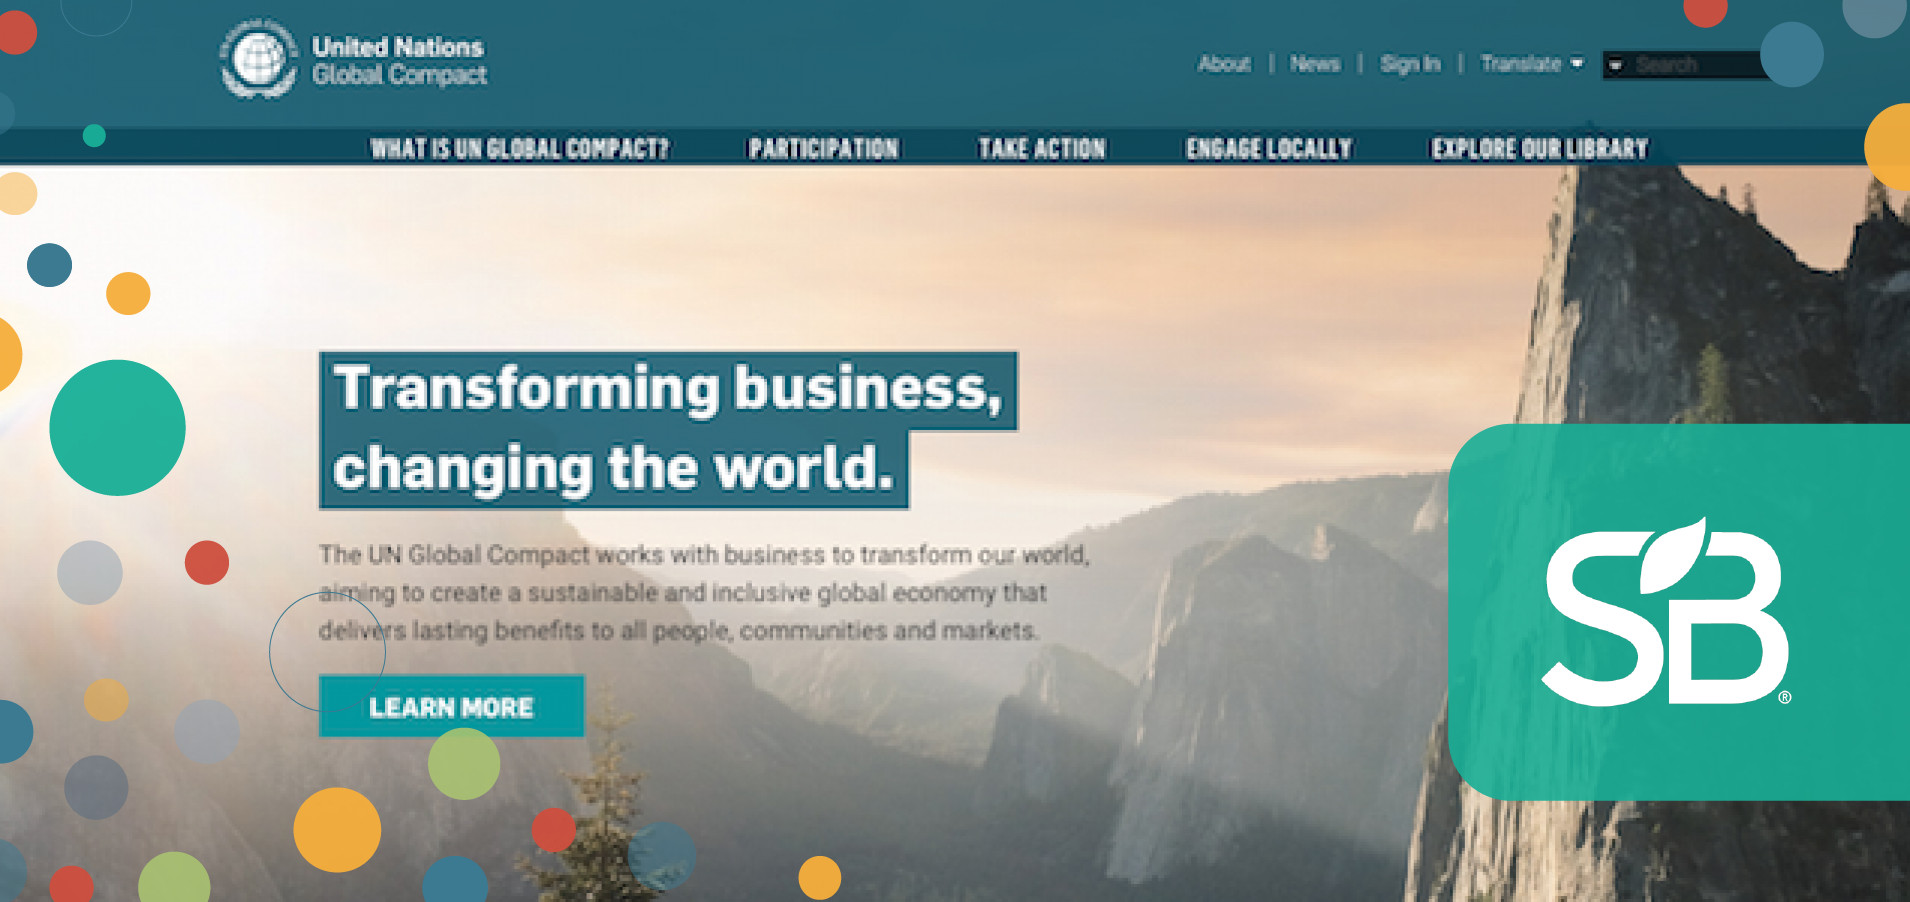 UN Global Compact Unveils Website to Spur Sustainable Business